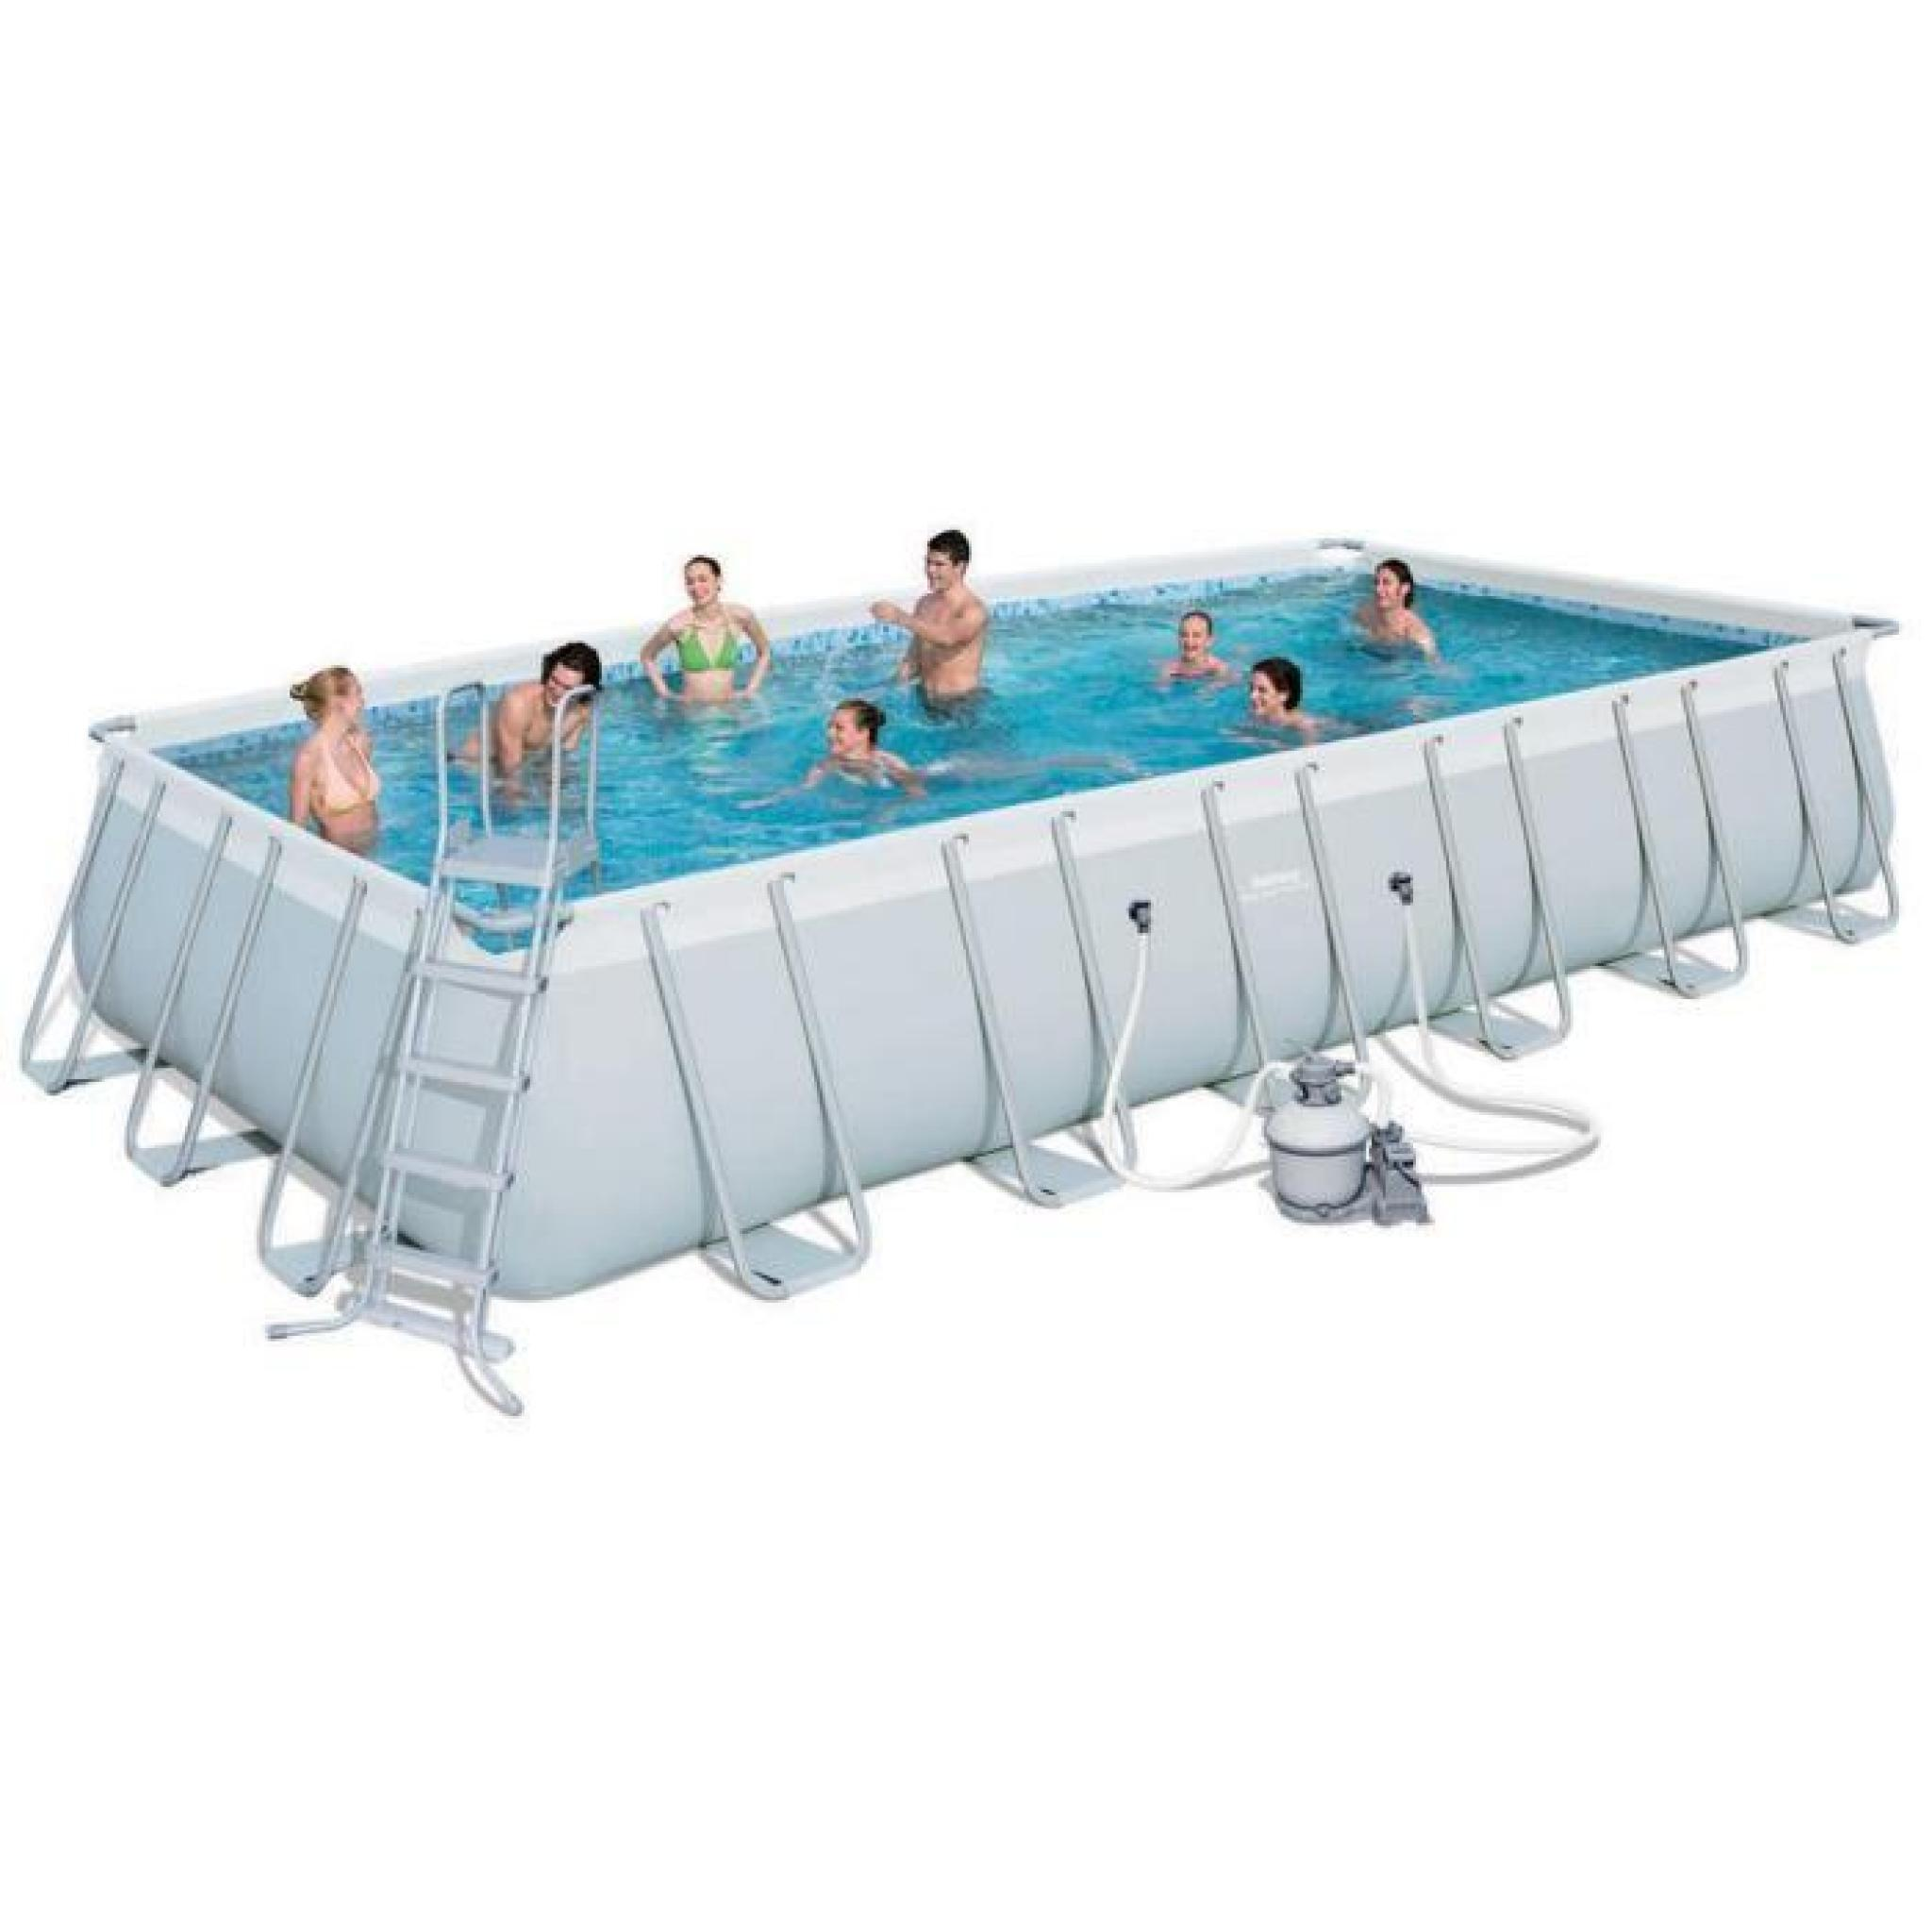 Piscine autoportante tubulaire power steel rectangl 4m12 for Piscine hors sol tubulaire pas cher